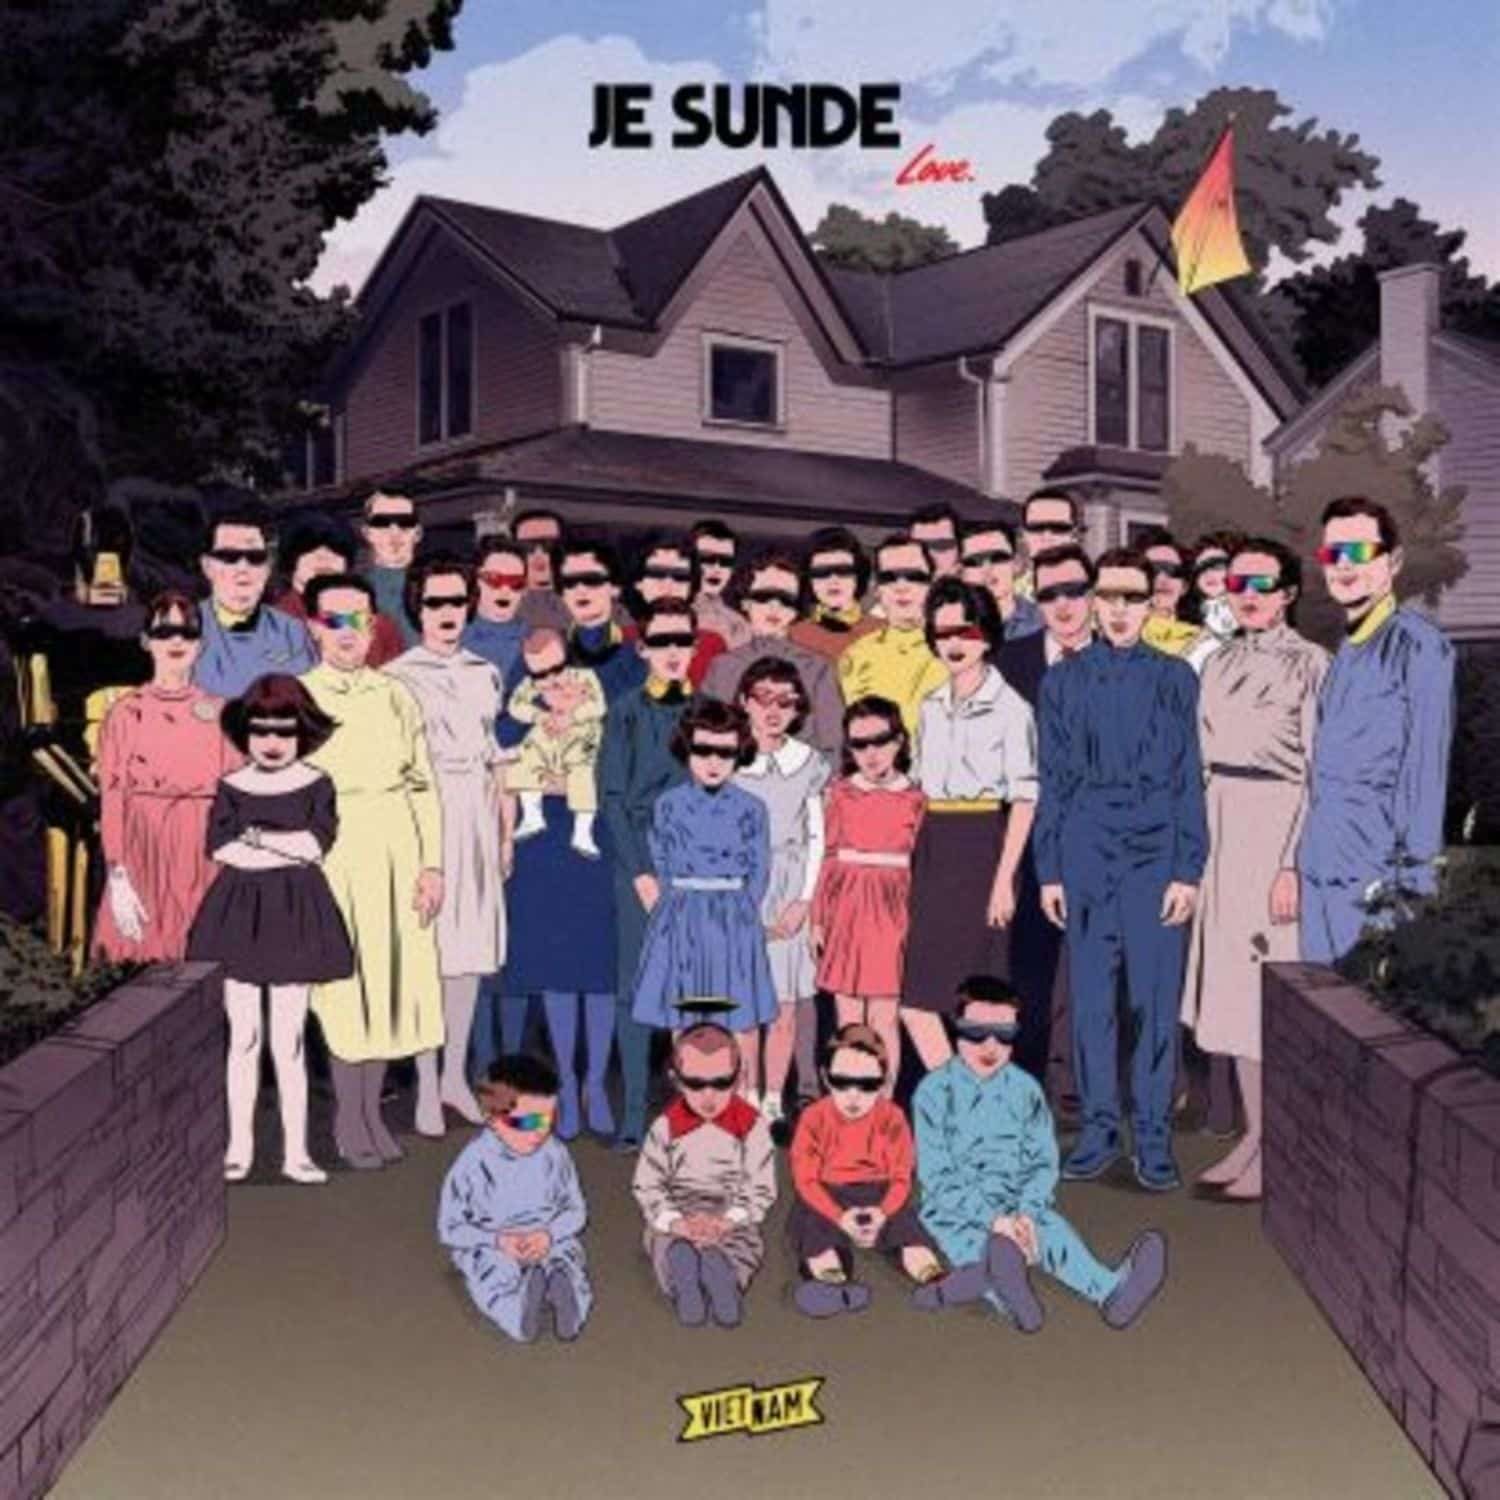 J.E. Sunde - 9 SONGS ABOUT LOVE